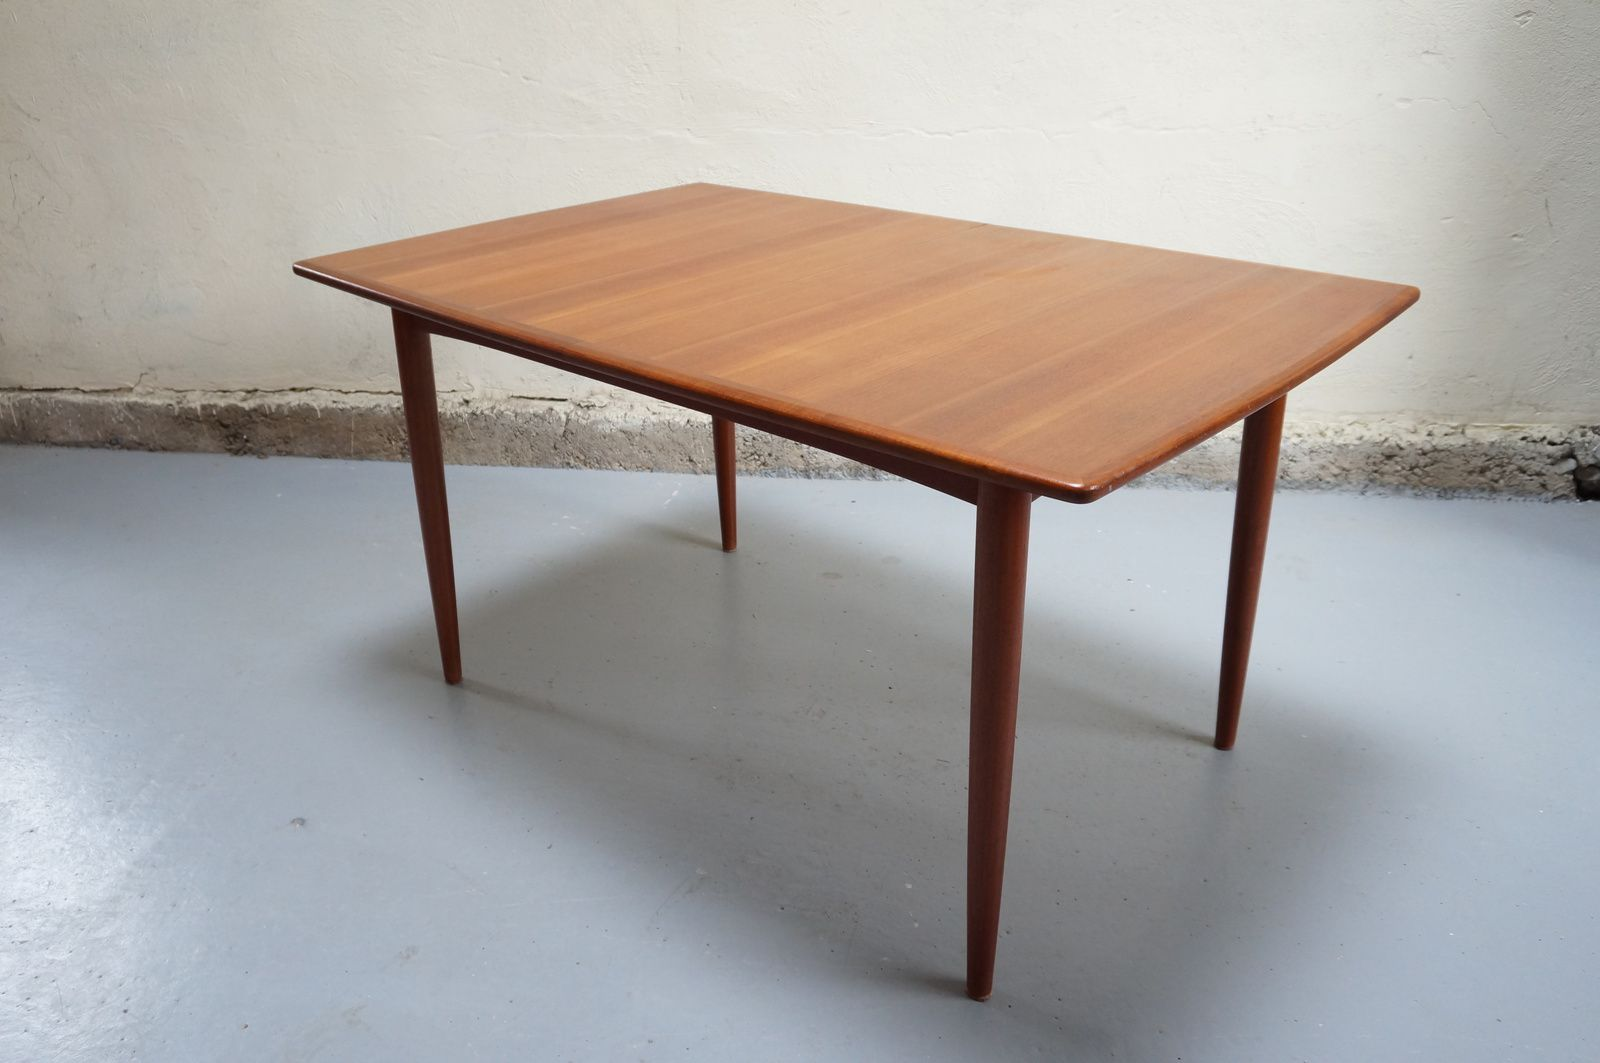 Vendue table manger scandinave teck design danois for Table de salle a manger annee 70